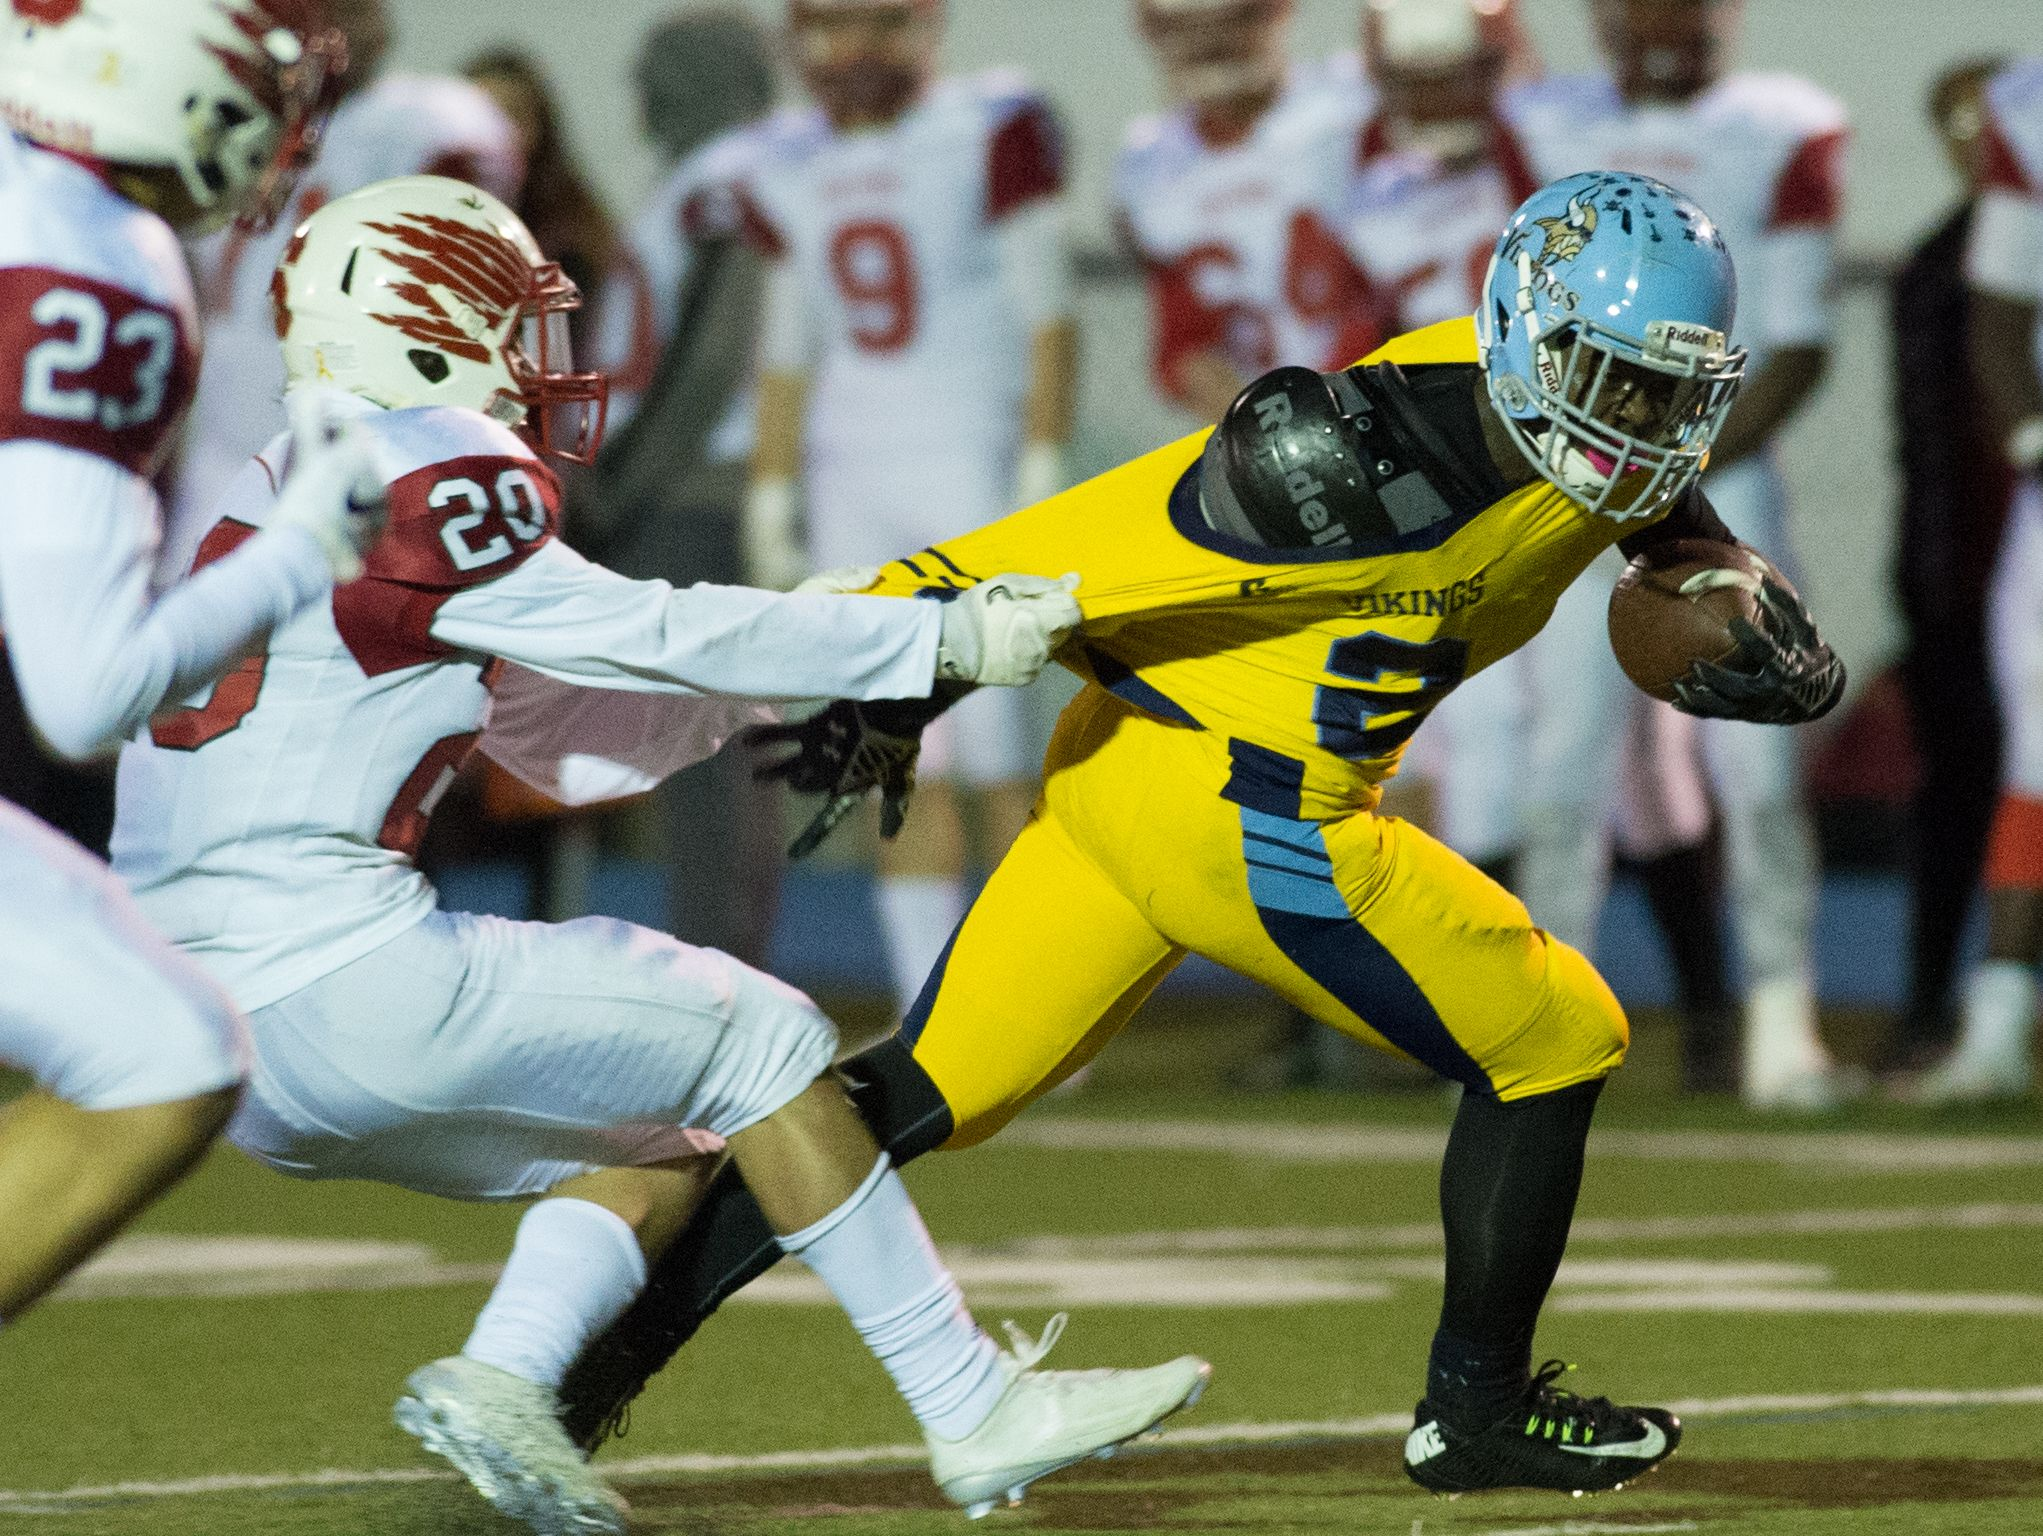 Smyrna's Jake Kaiser (20) grabs the jersey of Cape Henlopen's Rasheed Woods (2) to stop his run down the field.